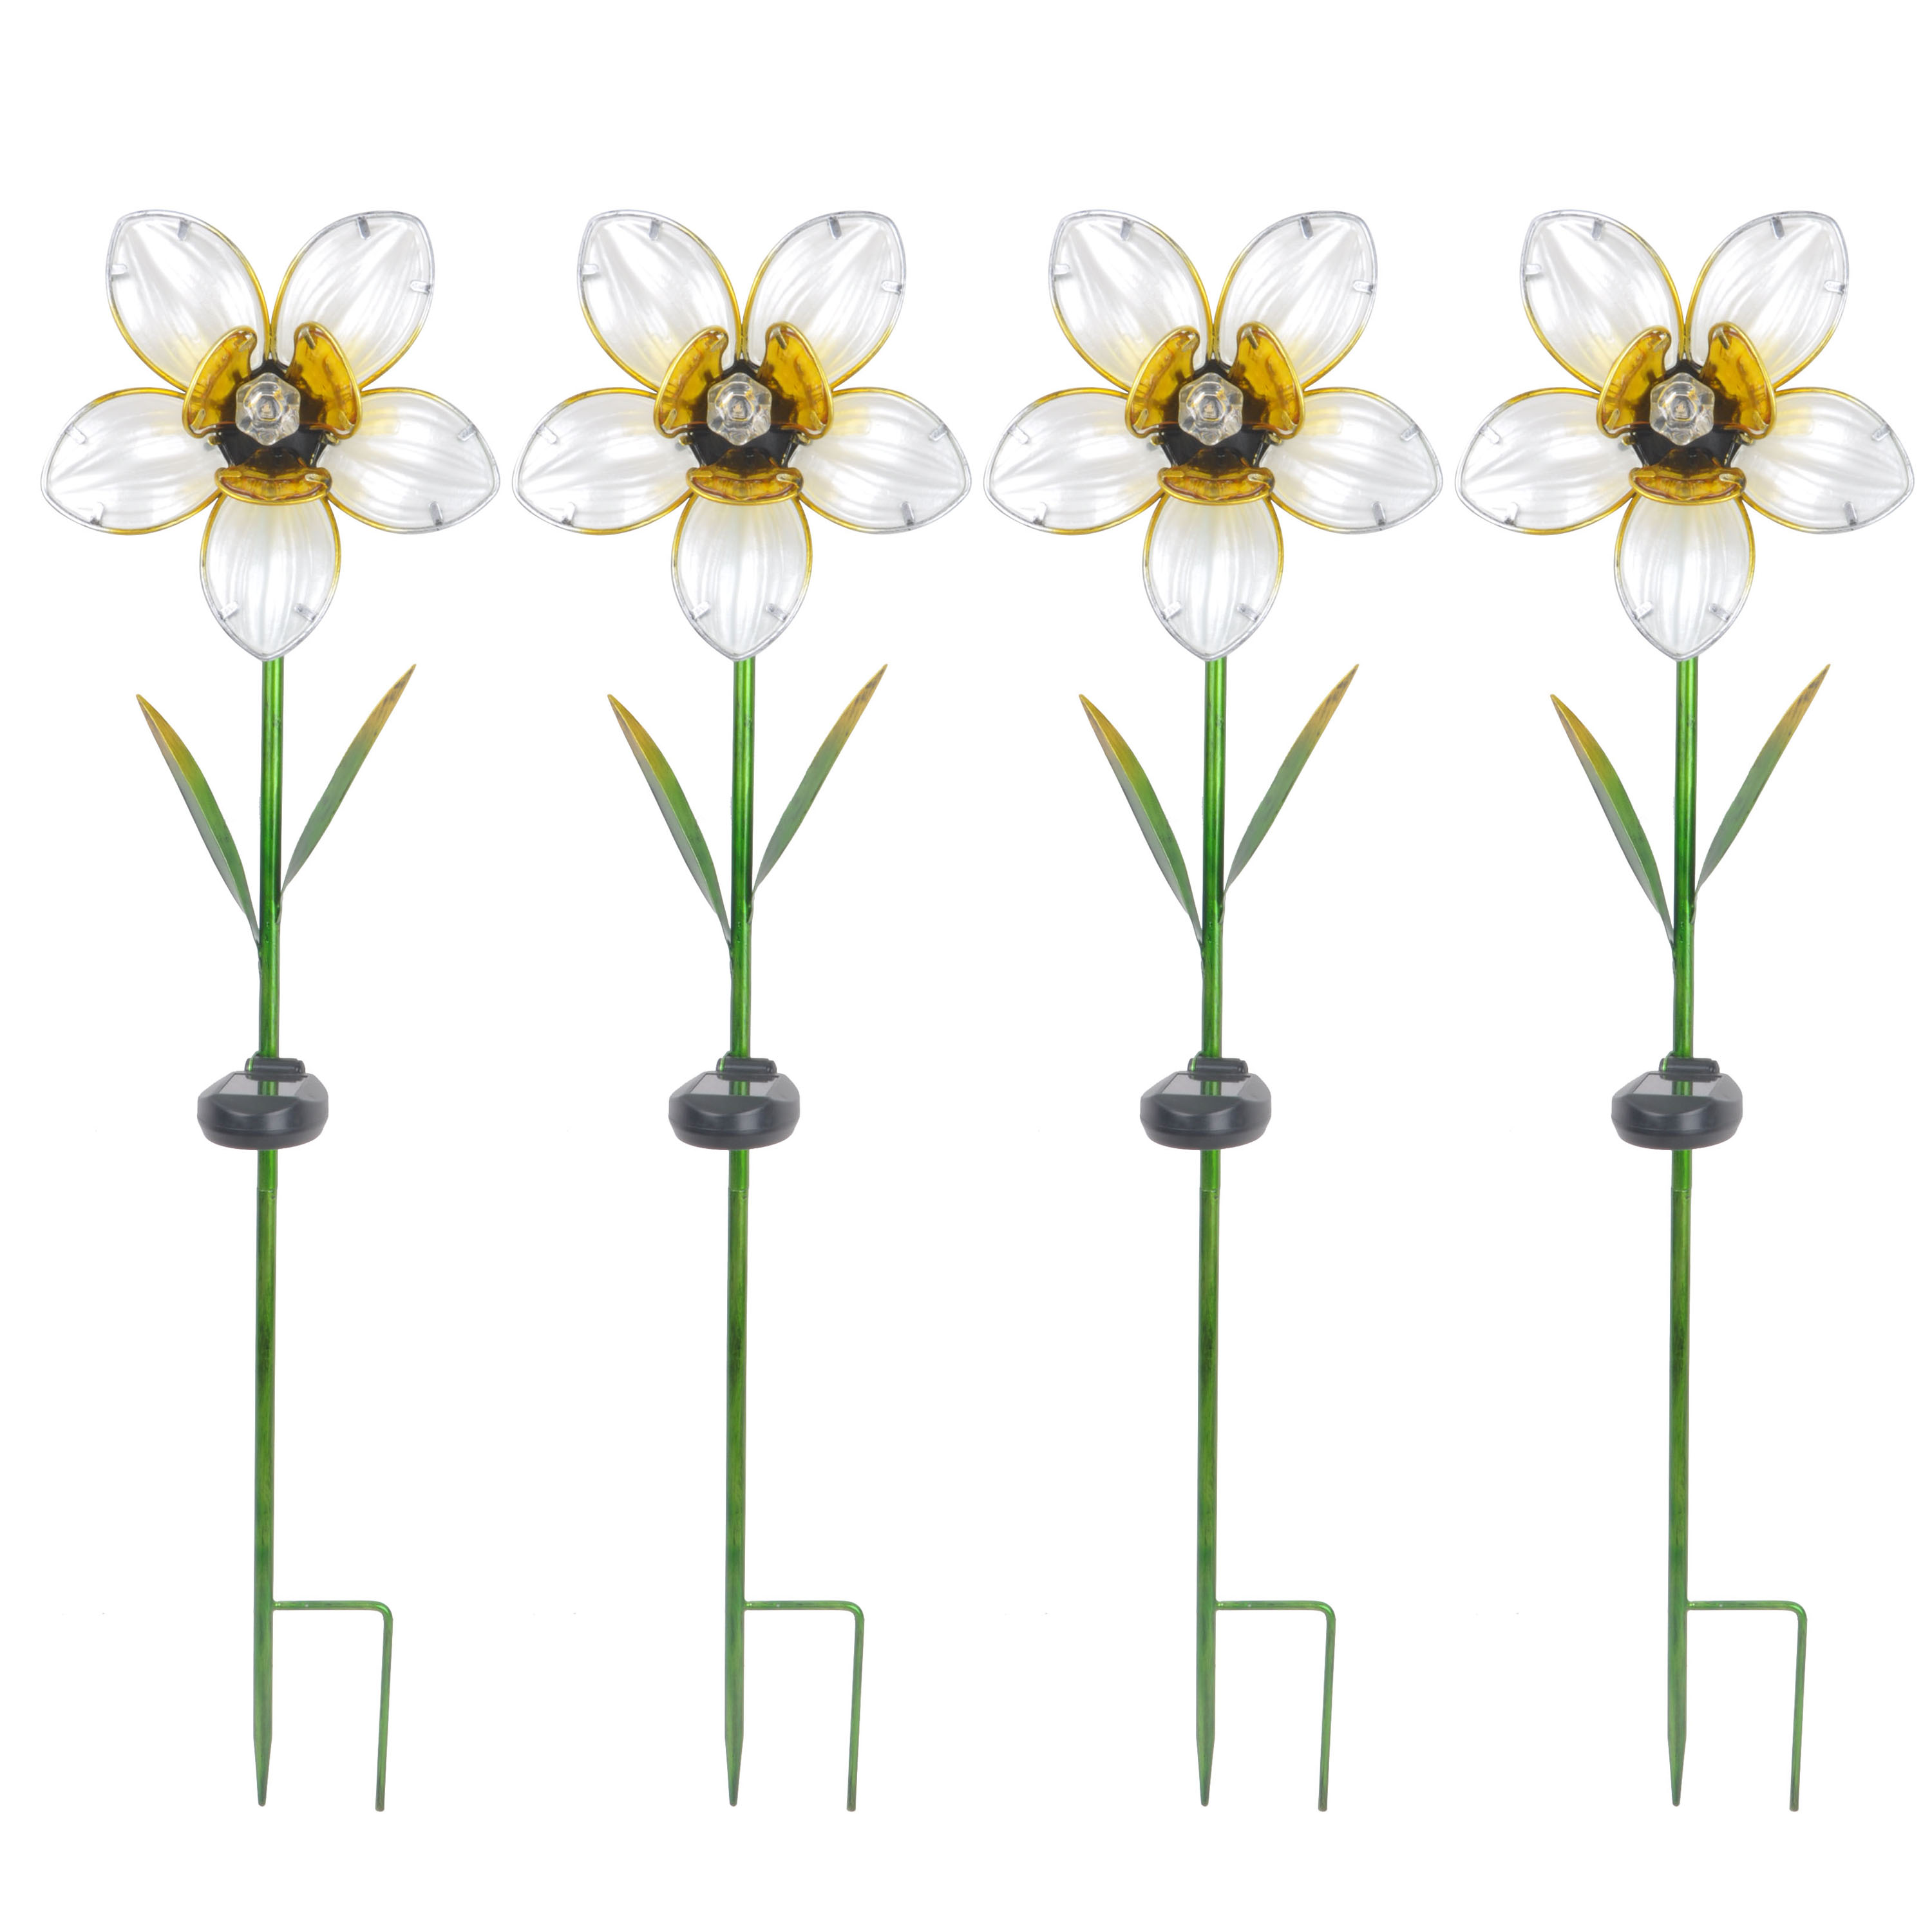 Better Homes and Gardens Outdoor Solar Daffodil Garden Stake